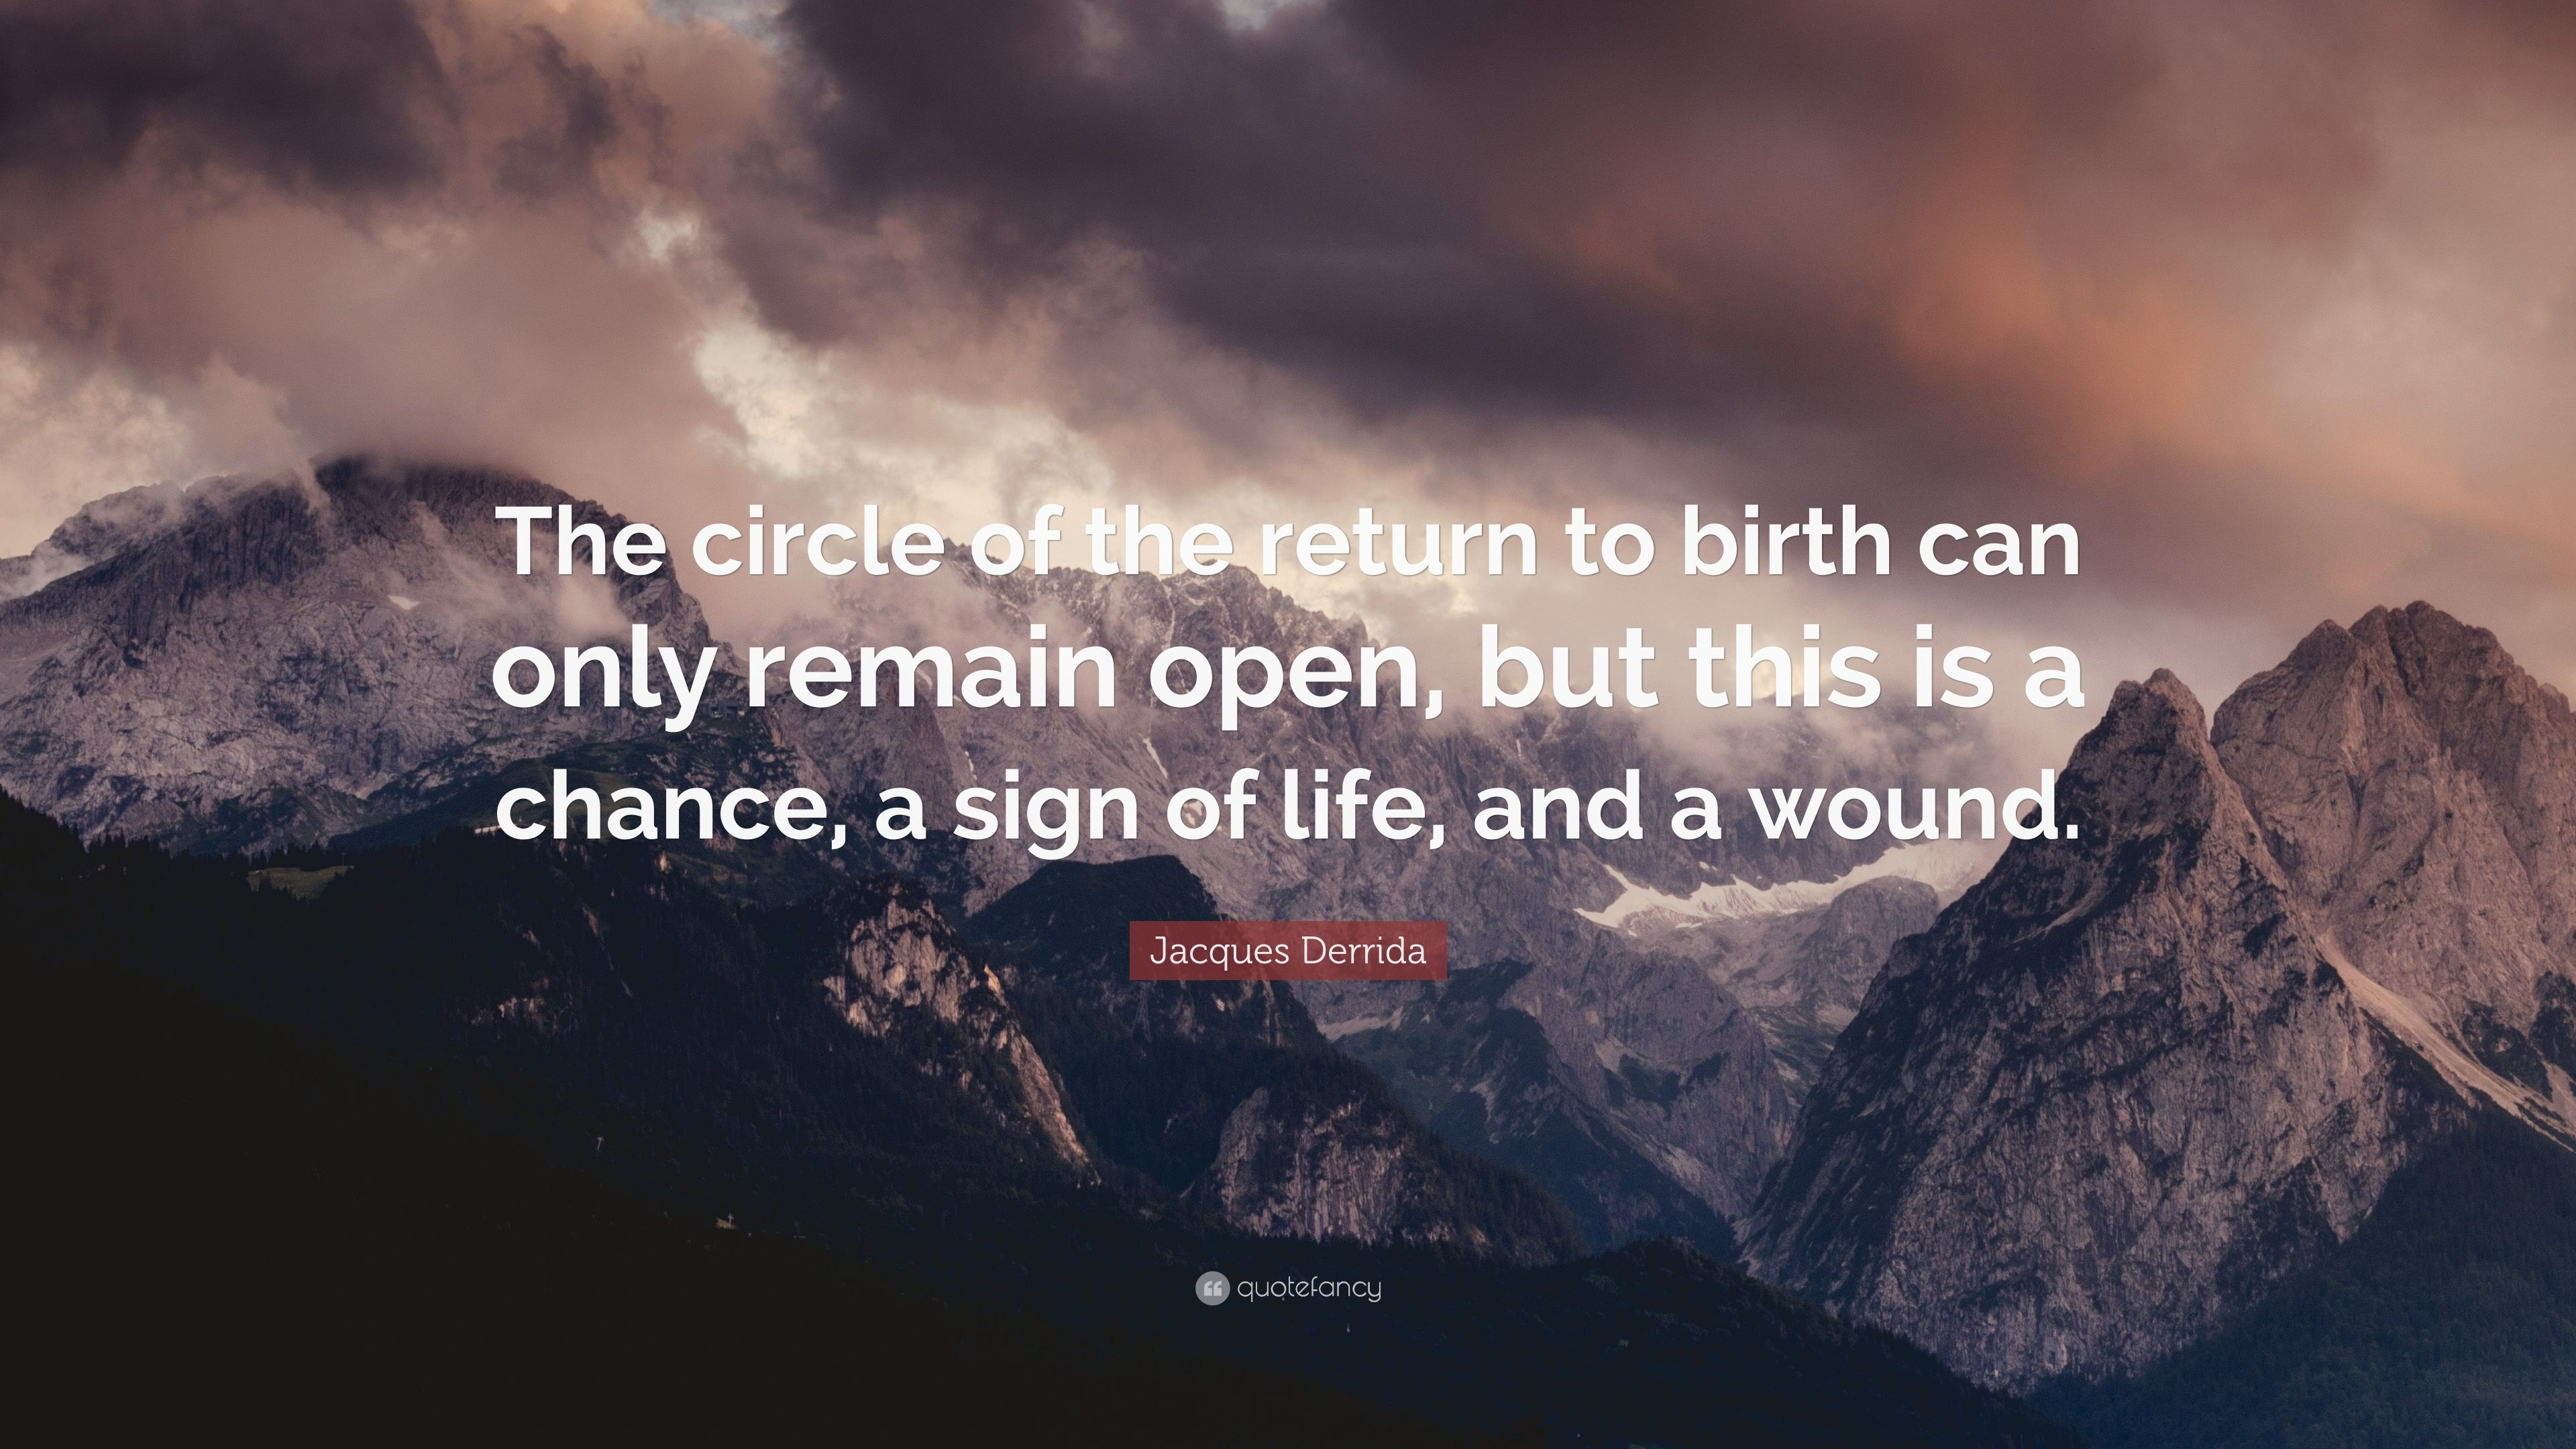 Jacques Derrida Quote The Circle Of The Return To Birth Can Only